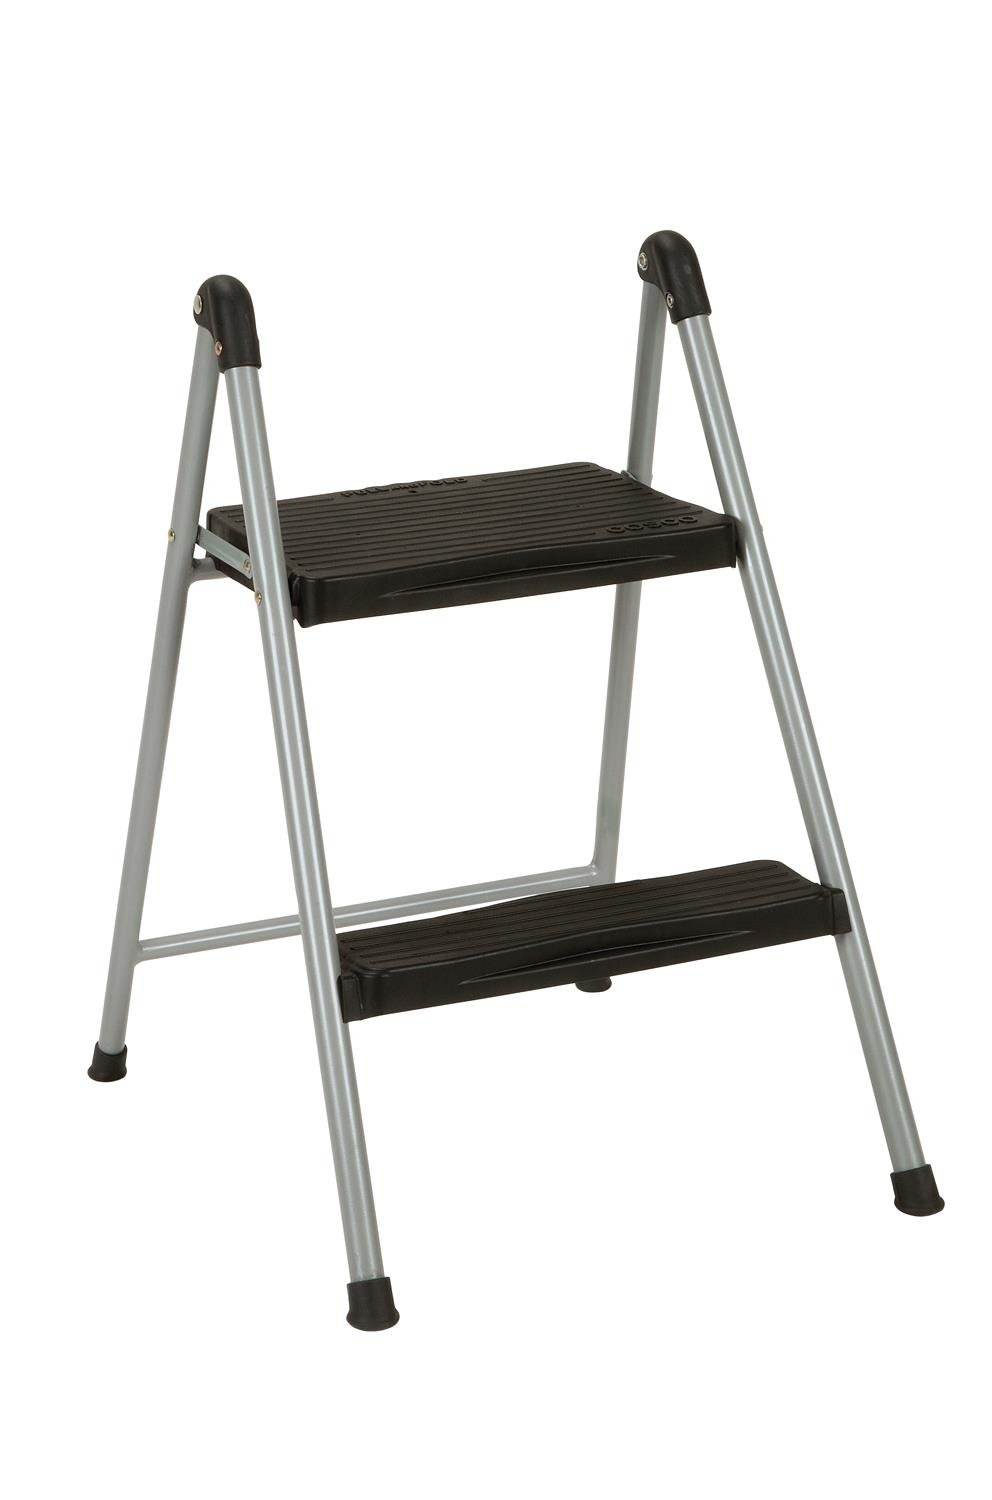 Cosco Dorel Industries Lightweight Folding Steel Step Stool, One Step Dorel Home Furnishings 11014PBL1E